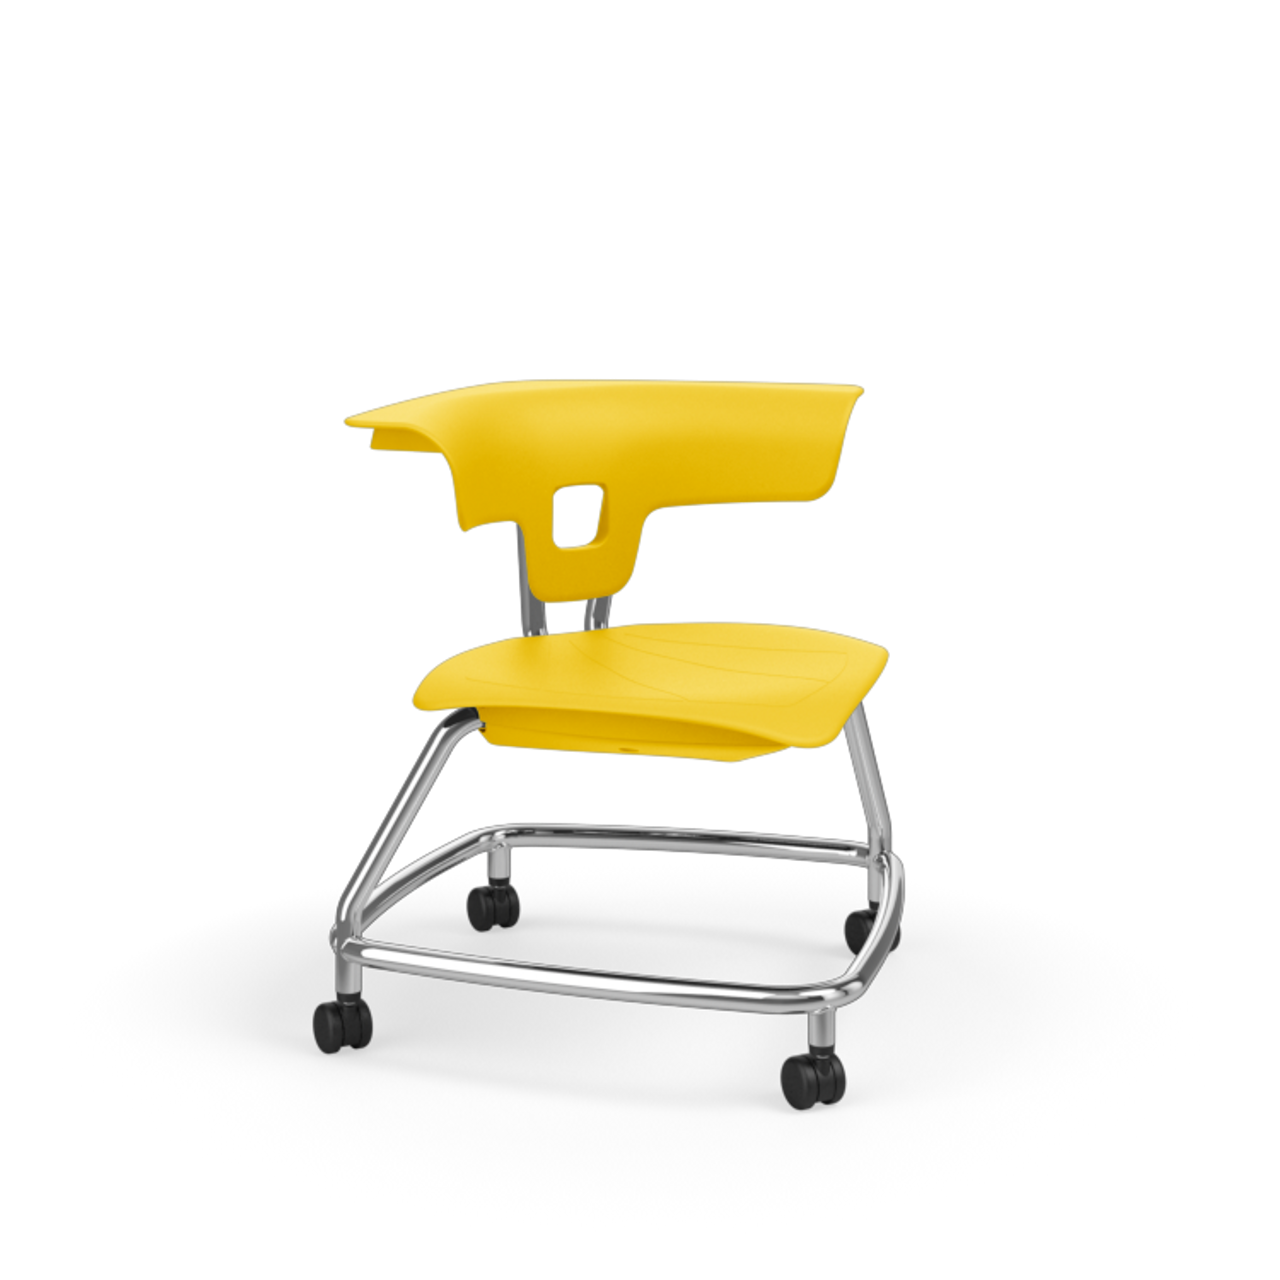 Pleasant Ki Ruckus Rkv100H15Nb Polypropylene Chair With Casters 15 Inch Seat Height Bralicious Painted Fabric Chair Ideas Braliciousco